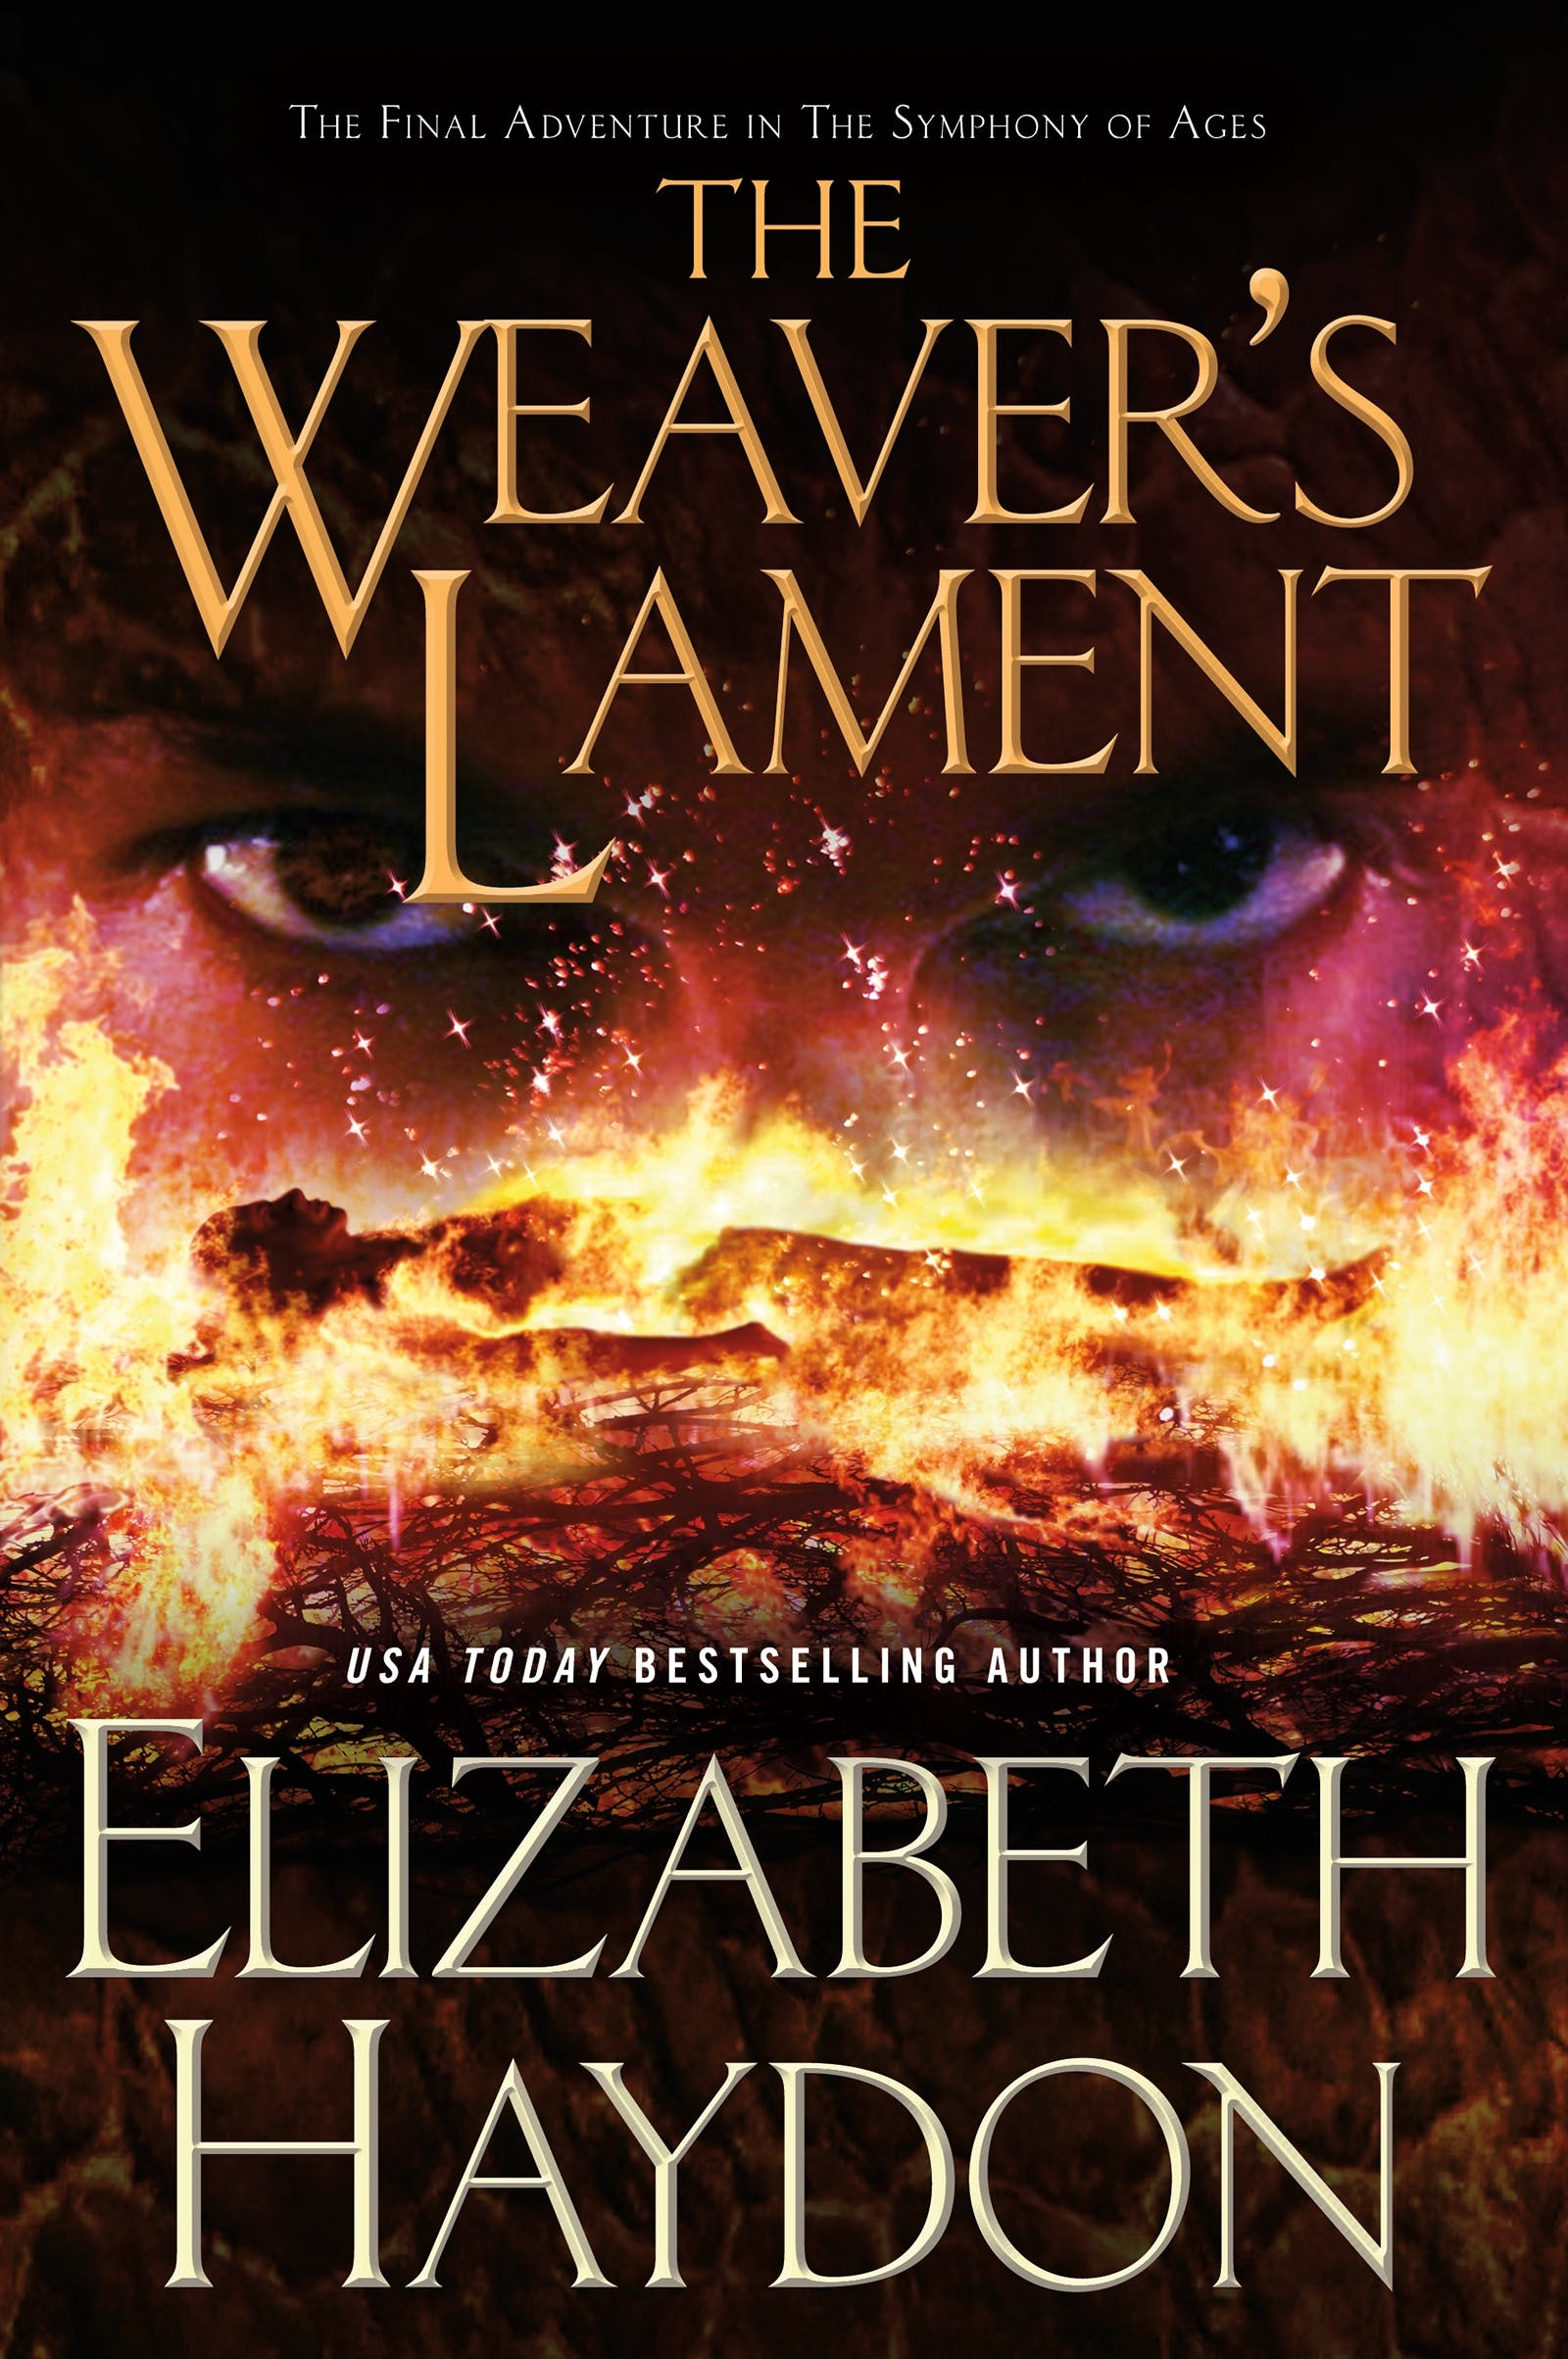 Image of The Weaver's Lament